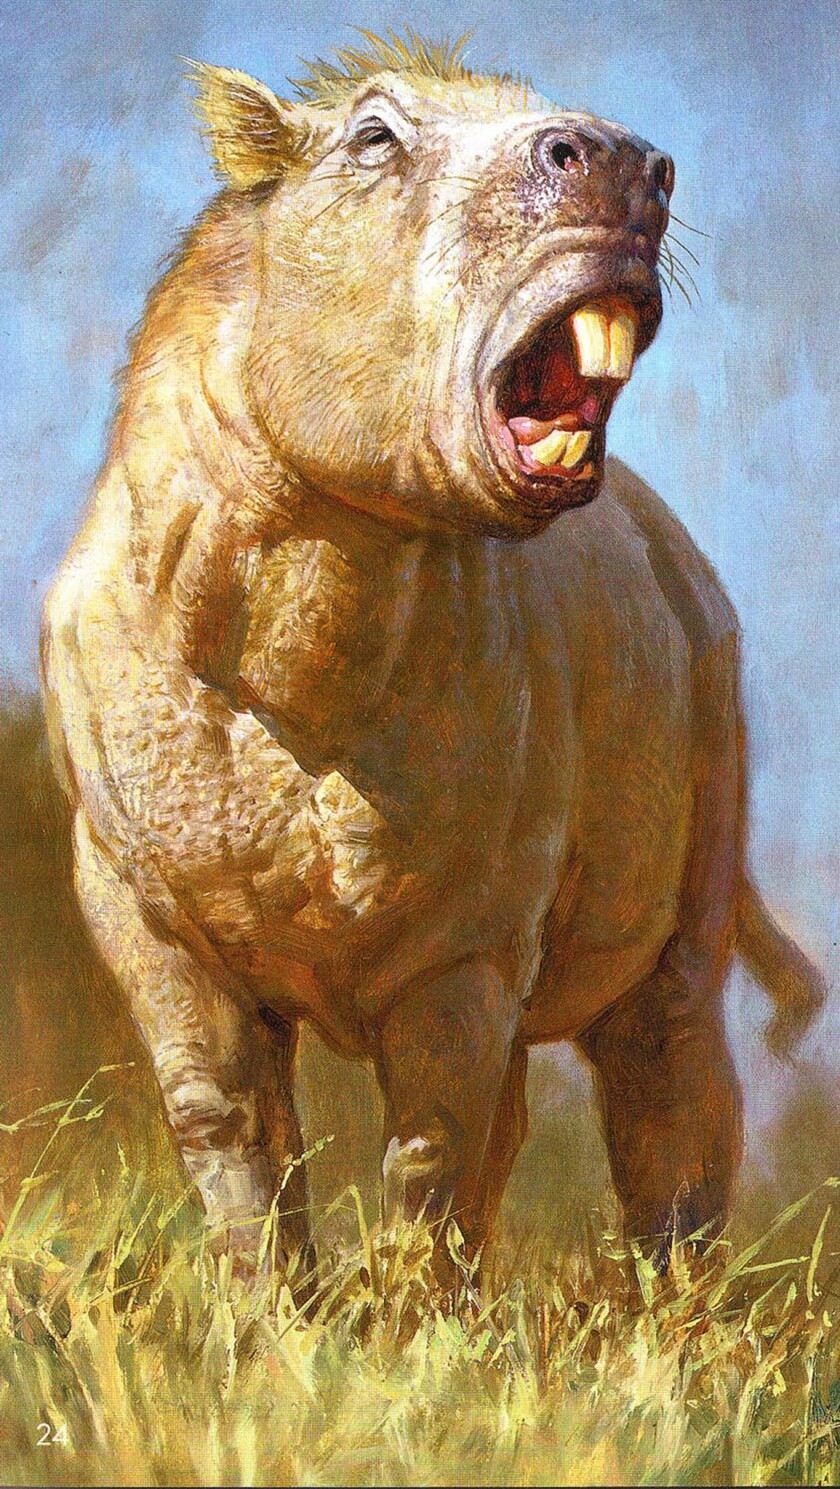 This artist's impression shows Josephoartigasia monesi, a rodent with fearsome front teeth that lived roughly 3 million years ago and weighed about one ton.